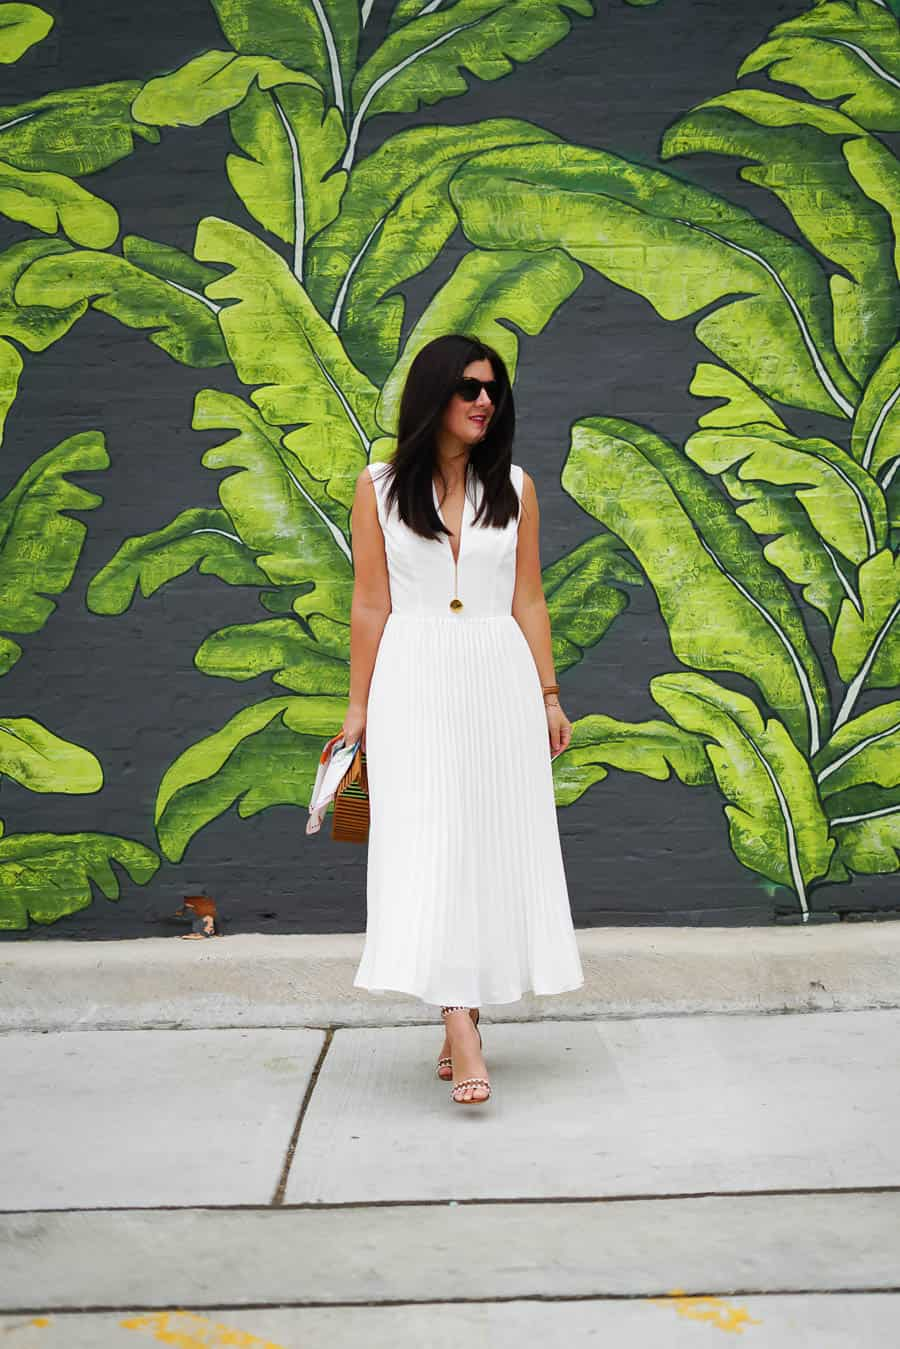 ASOS white pleated dress, Cult Gaia dark stain clutch, a lily love affair, chicago blogger, schutz sandals, Spring style